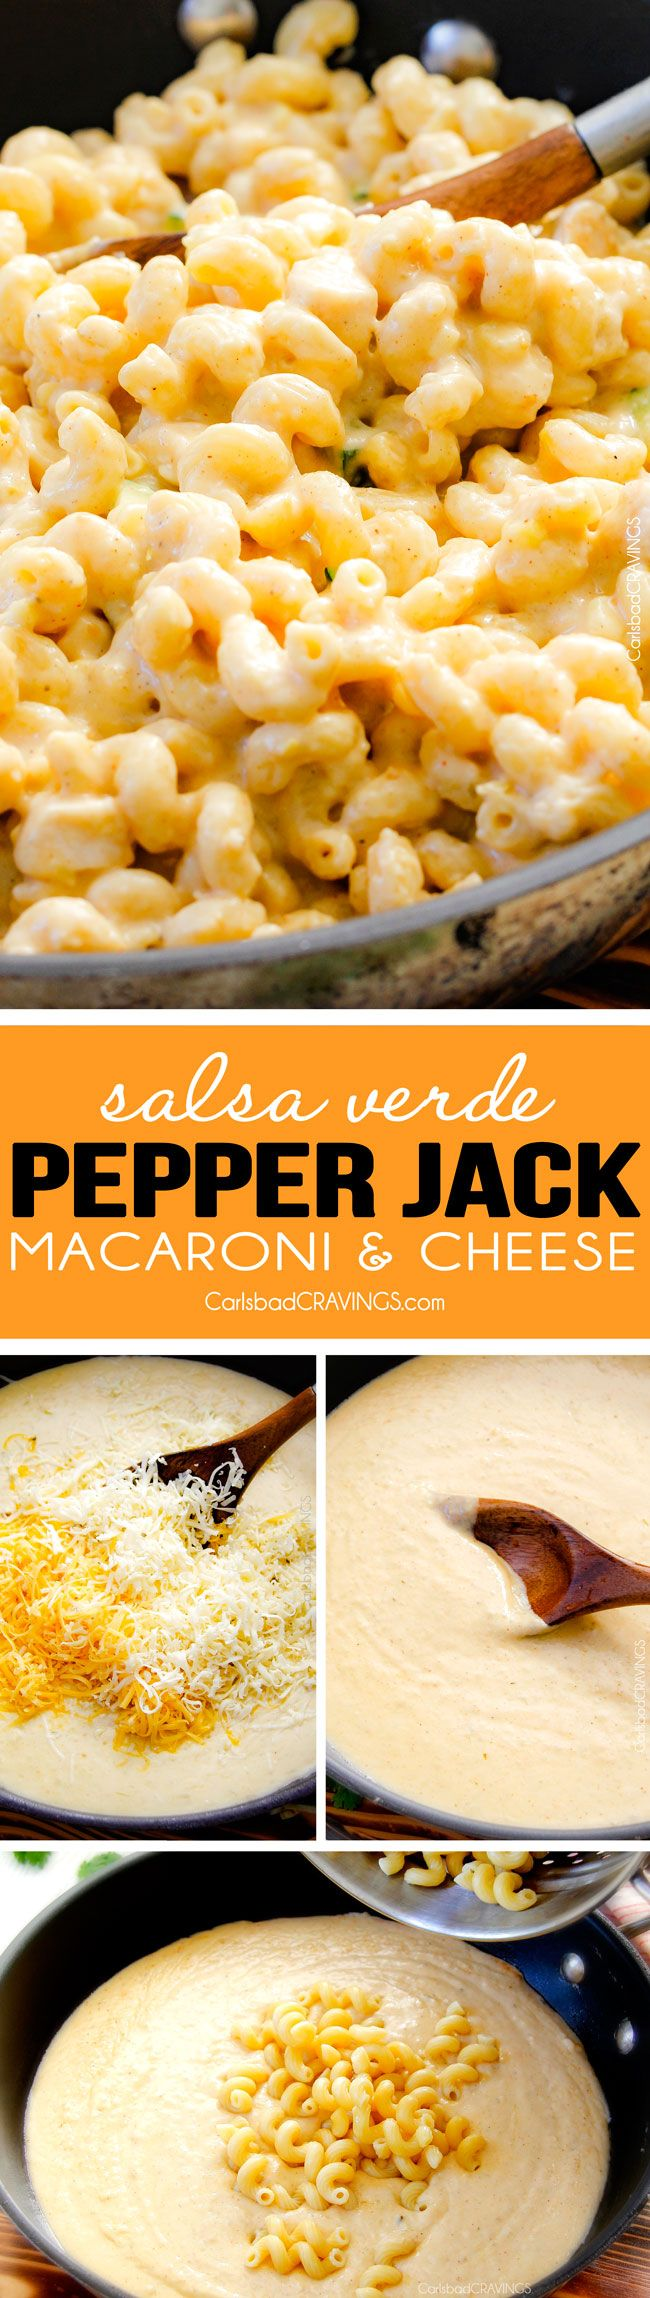 Salsa Verde Pepper Jack Macaroni and Cheese